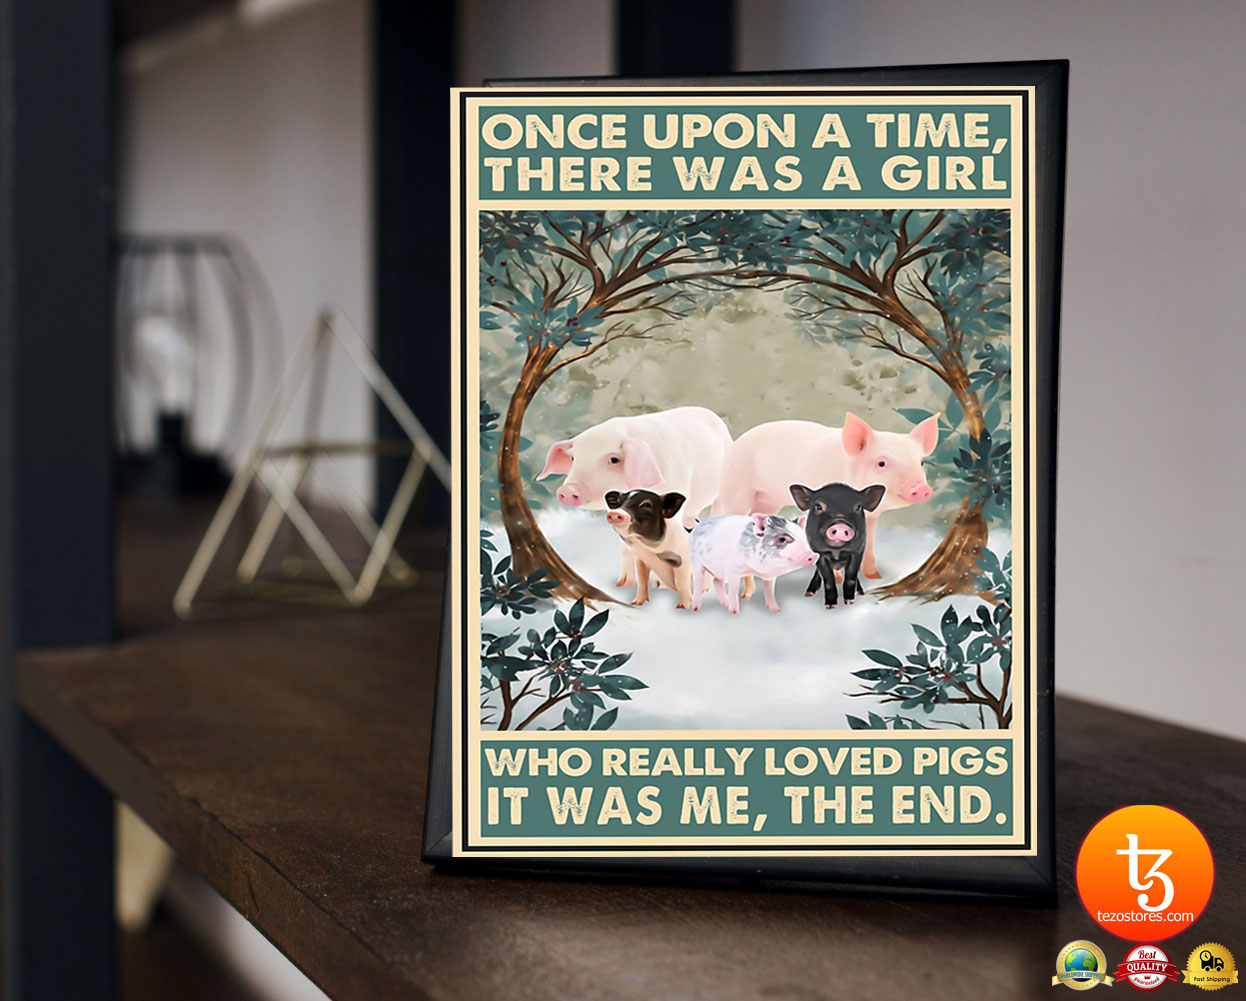 Once upon a time there was a girl who really loved pigs poster